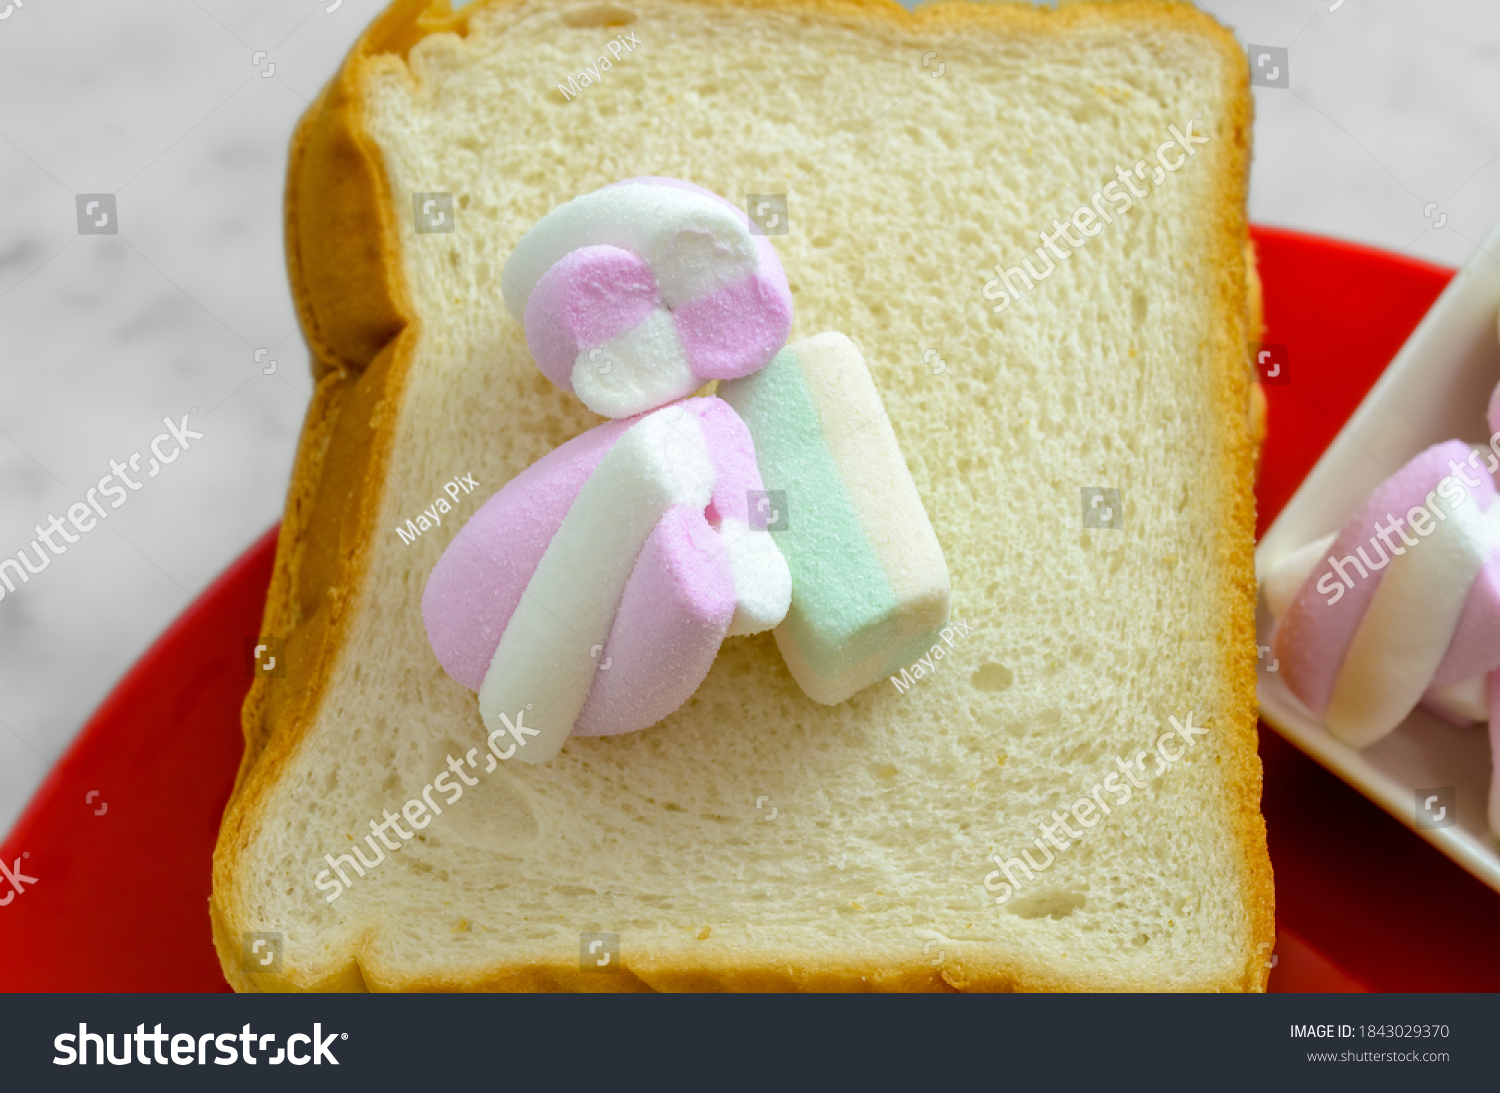 Pastel Colored Marshmallows on a slice of Bread ready to be sandwiched.